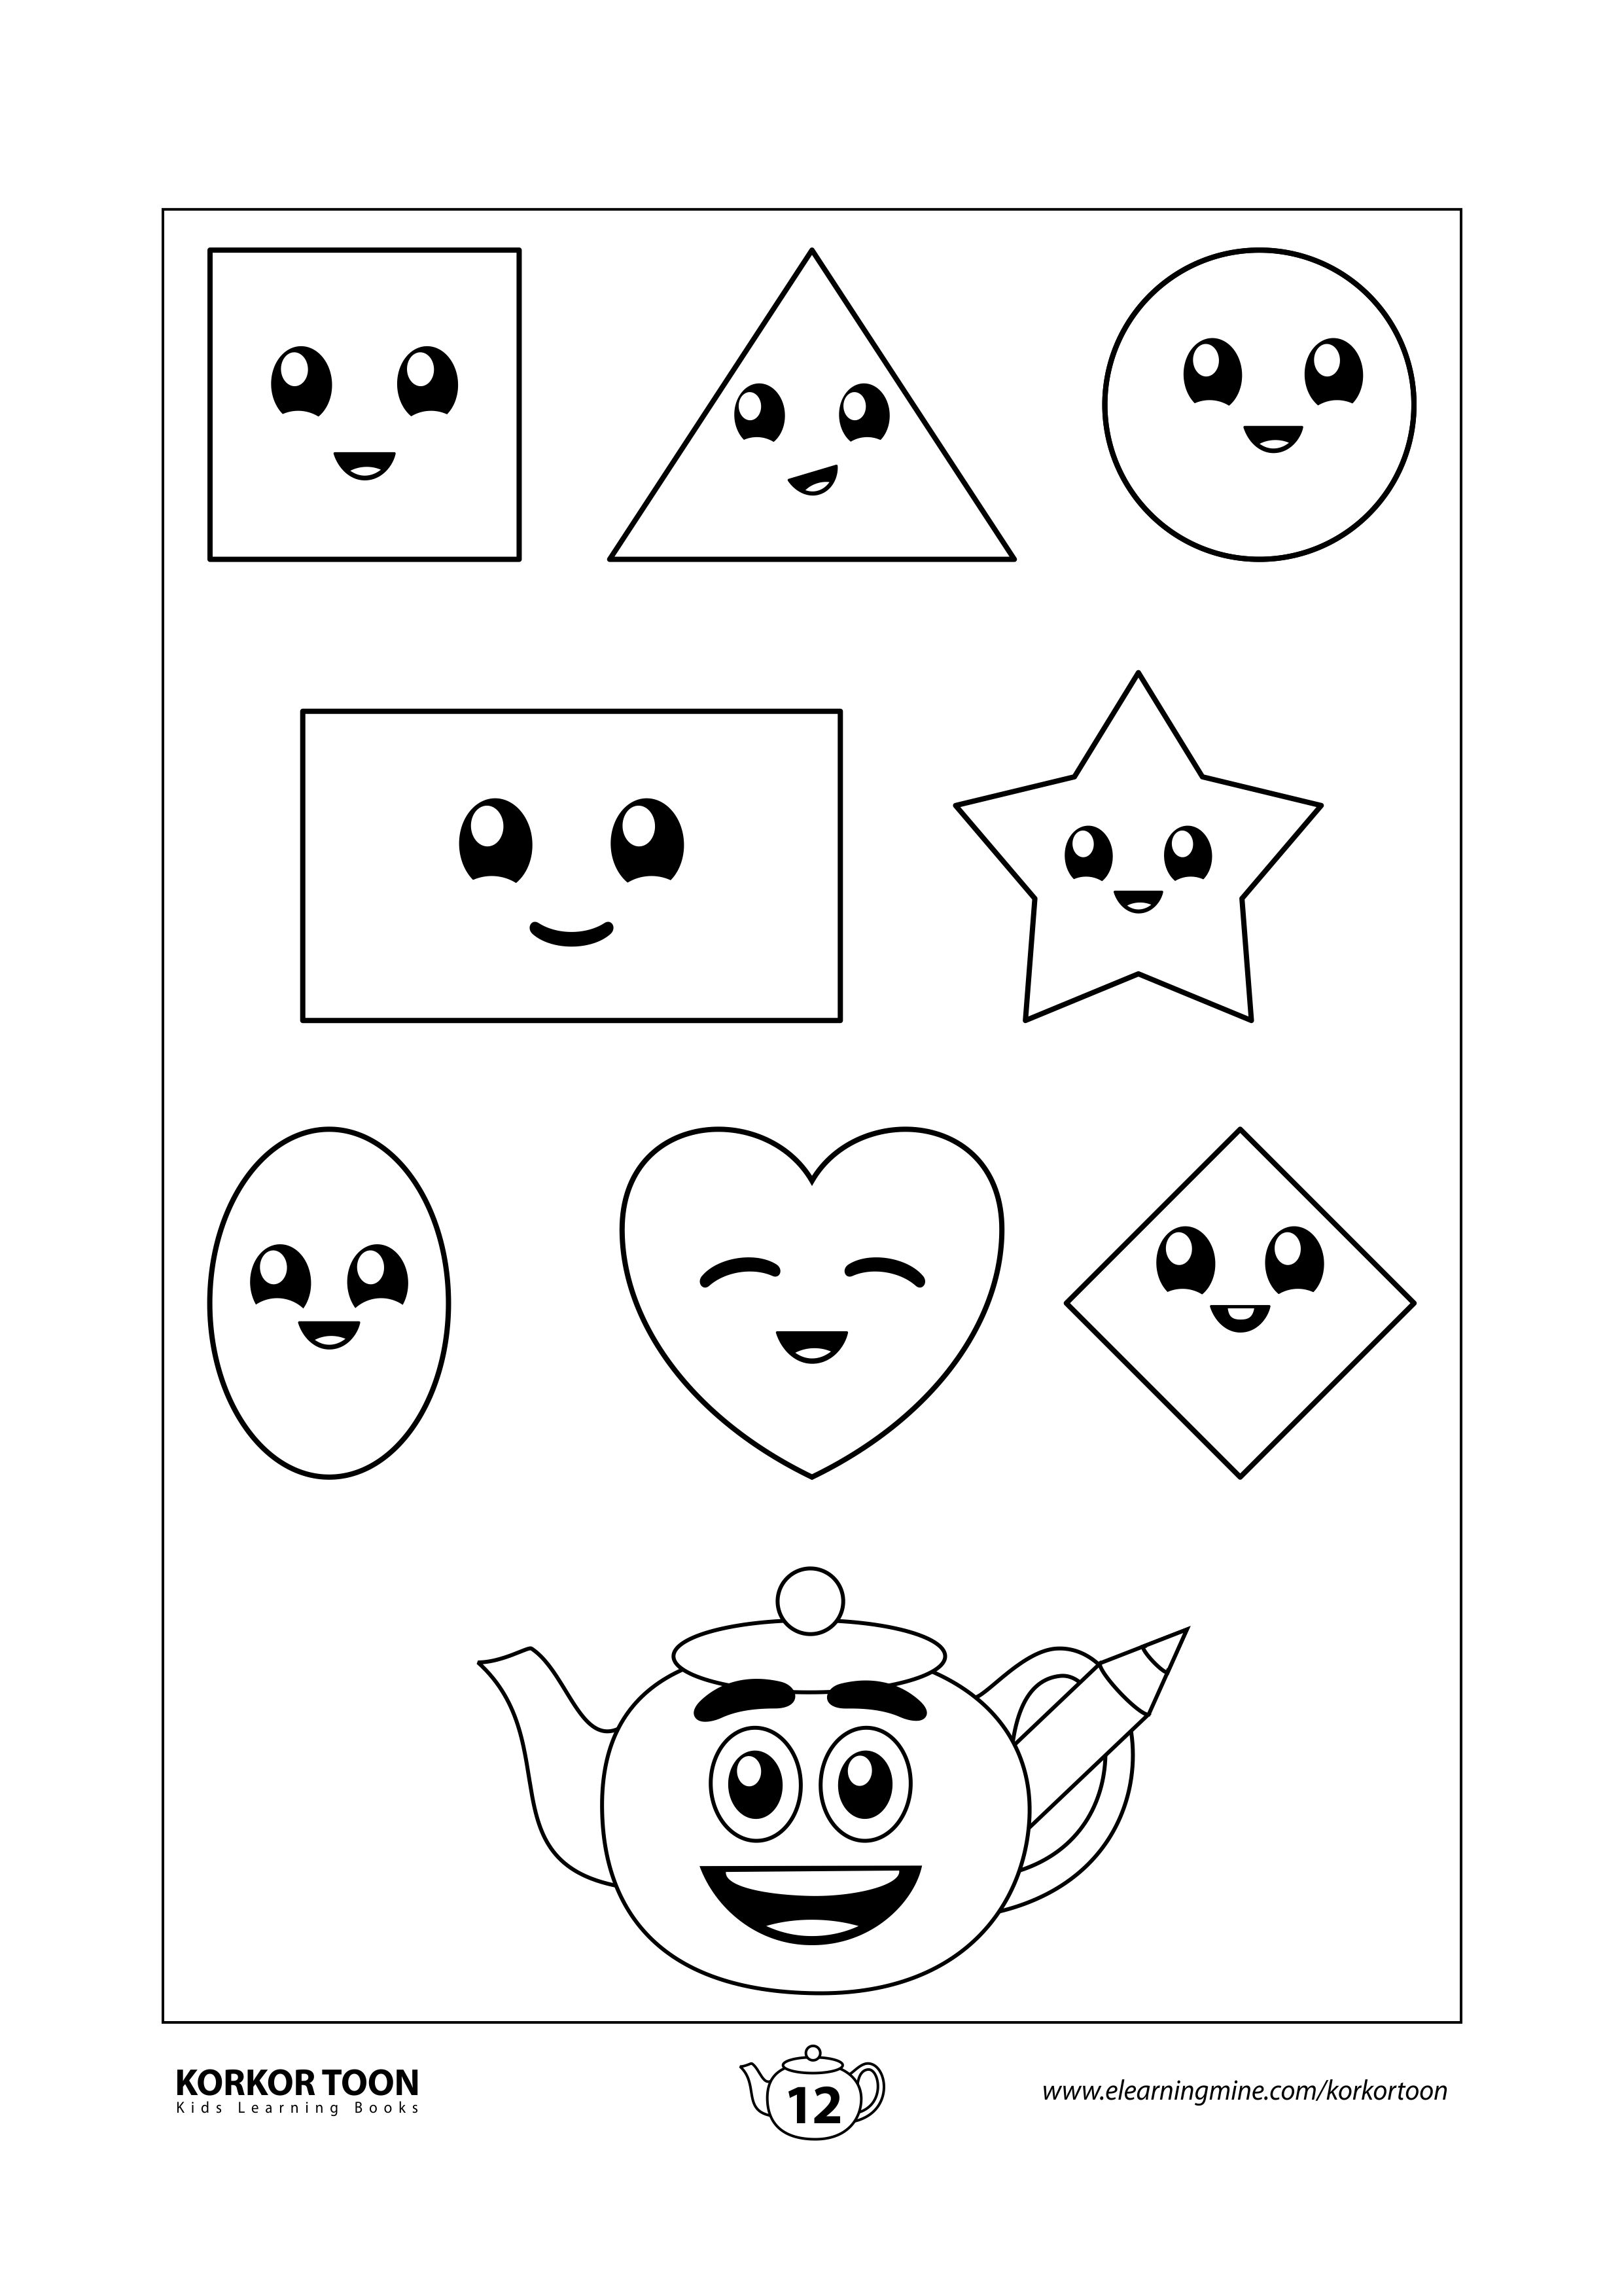 Free Printable High Quality Coloring Pages For Kids Download Free Pdf For Shapes Coloring Book For Kids Korko In 2020 Coloring Books Kids Coloring Books Kids Pages